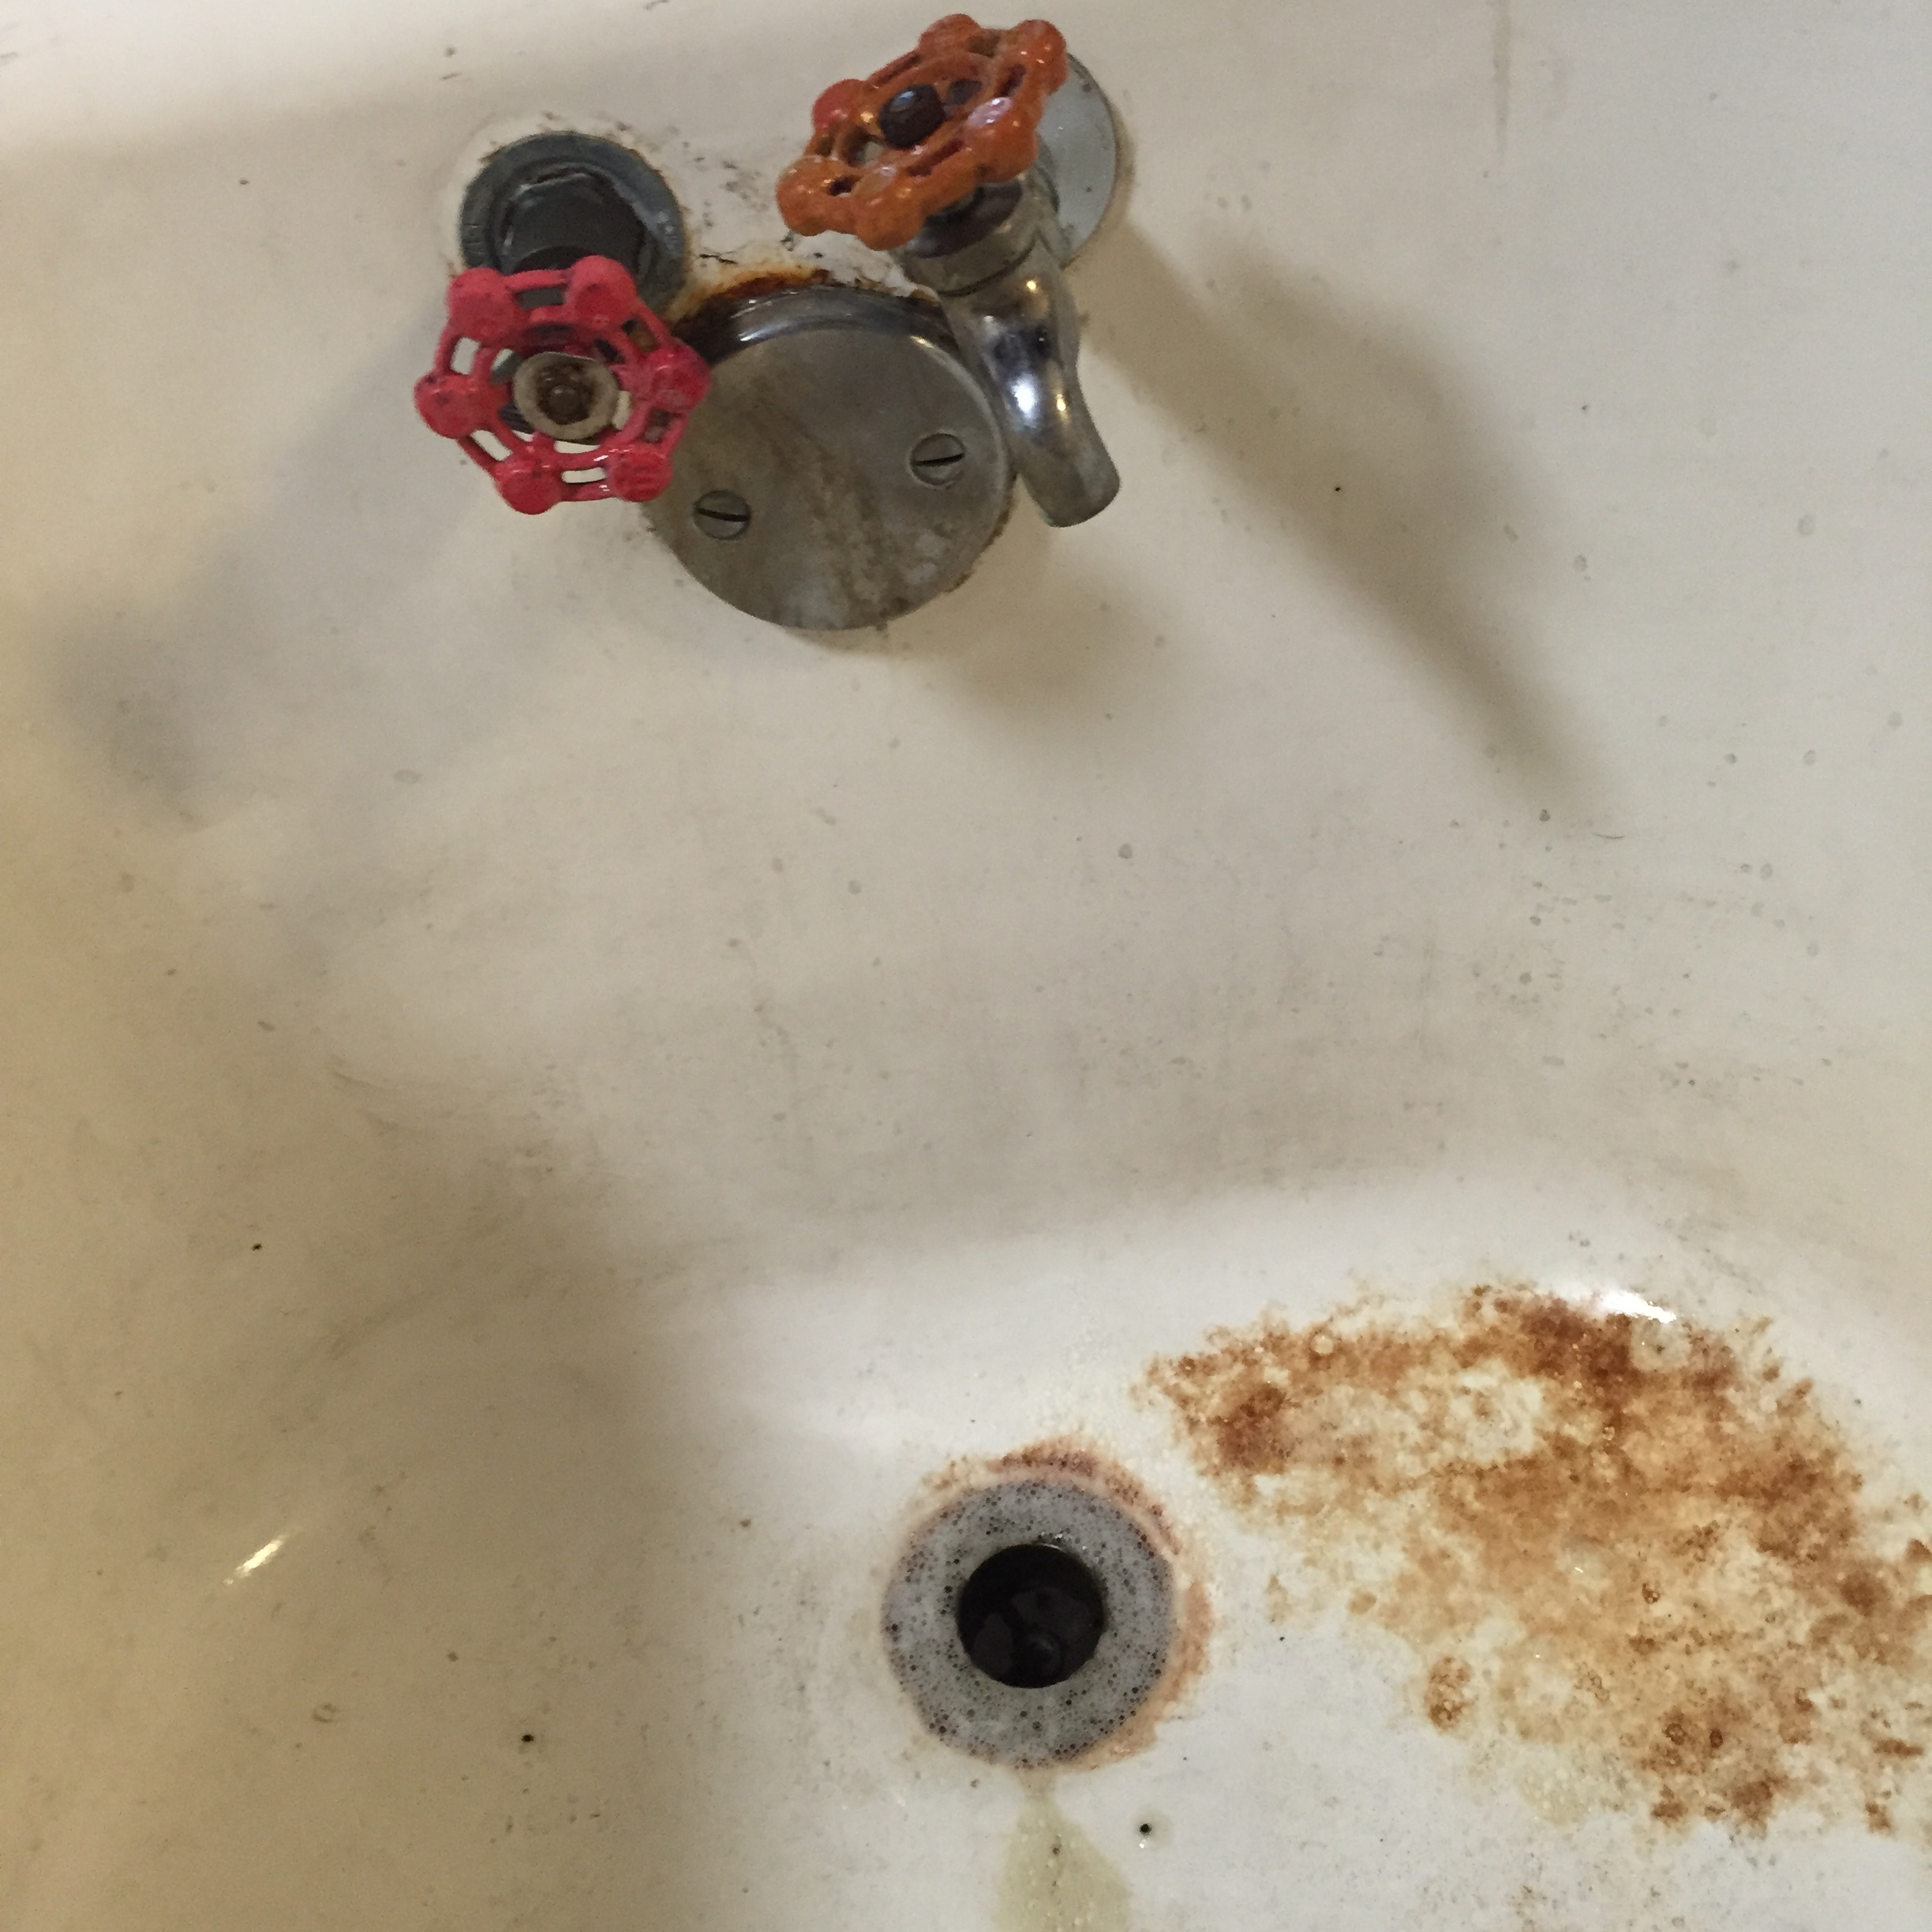 More rust spots and crazy plumbing